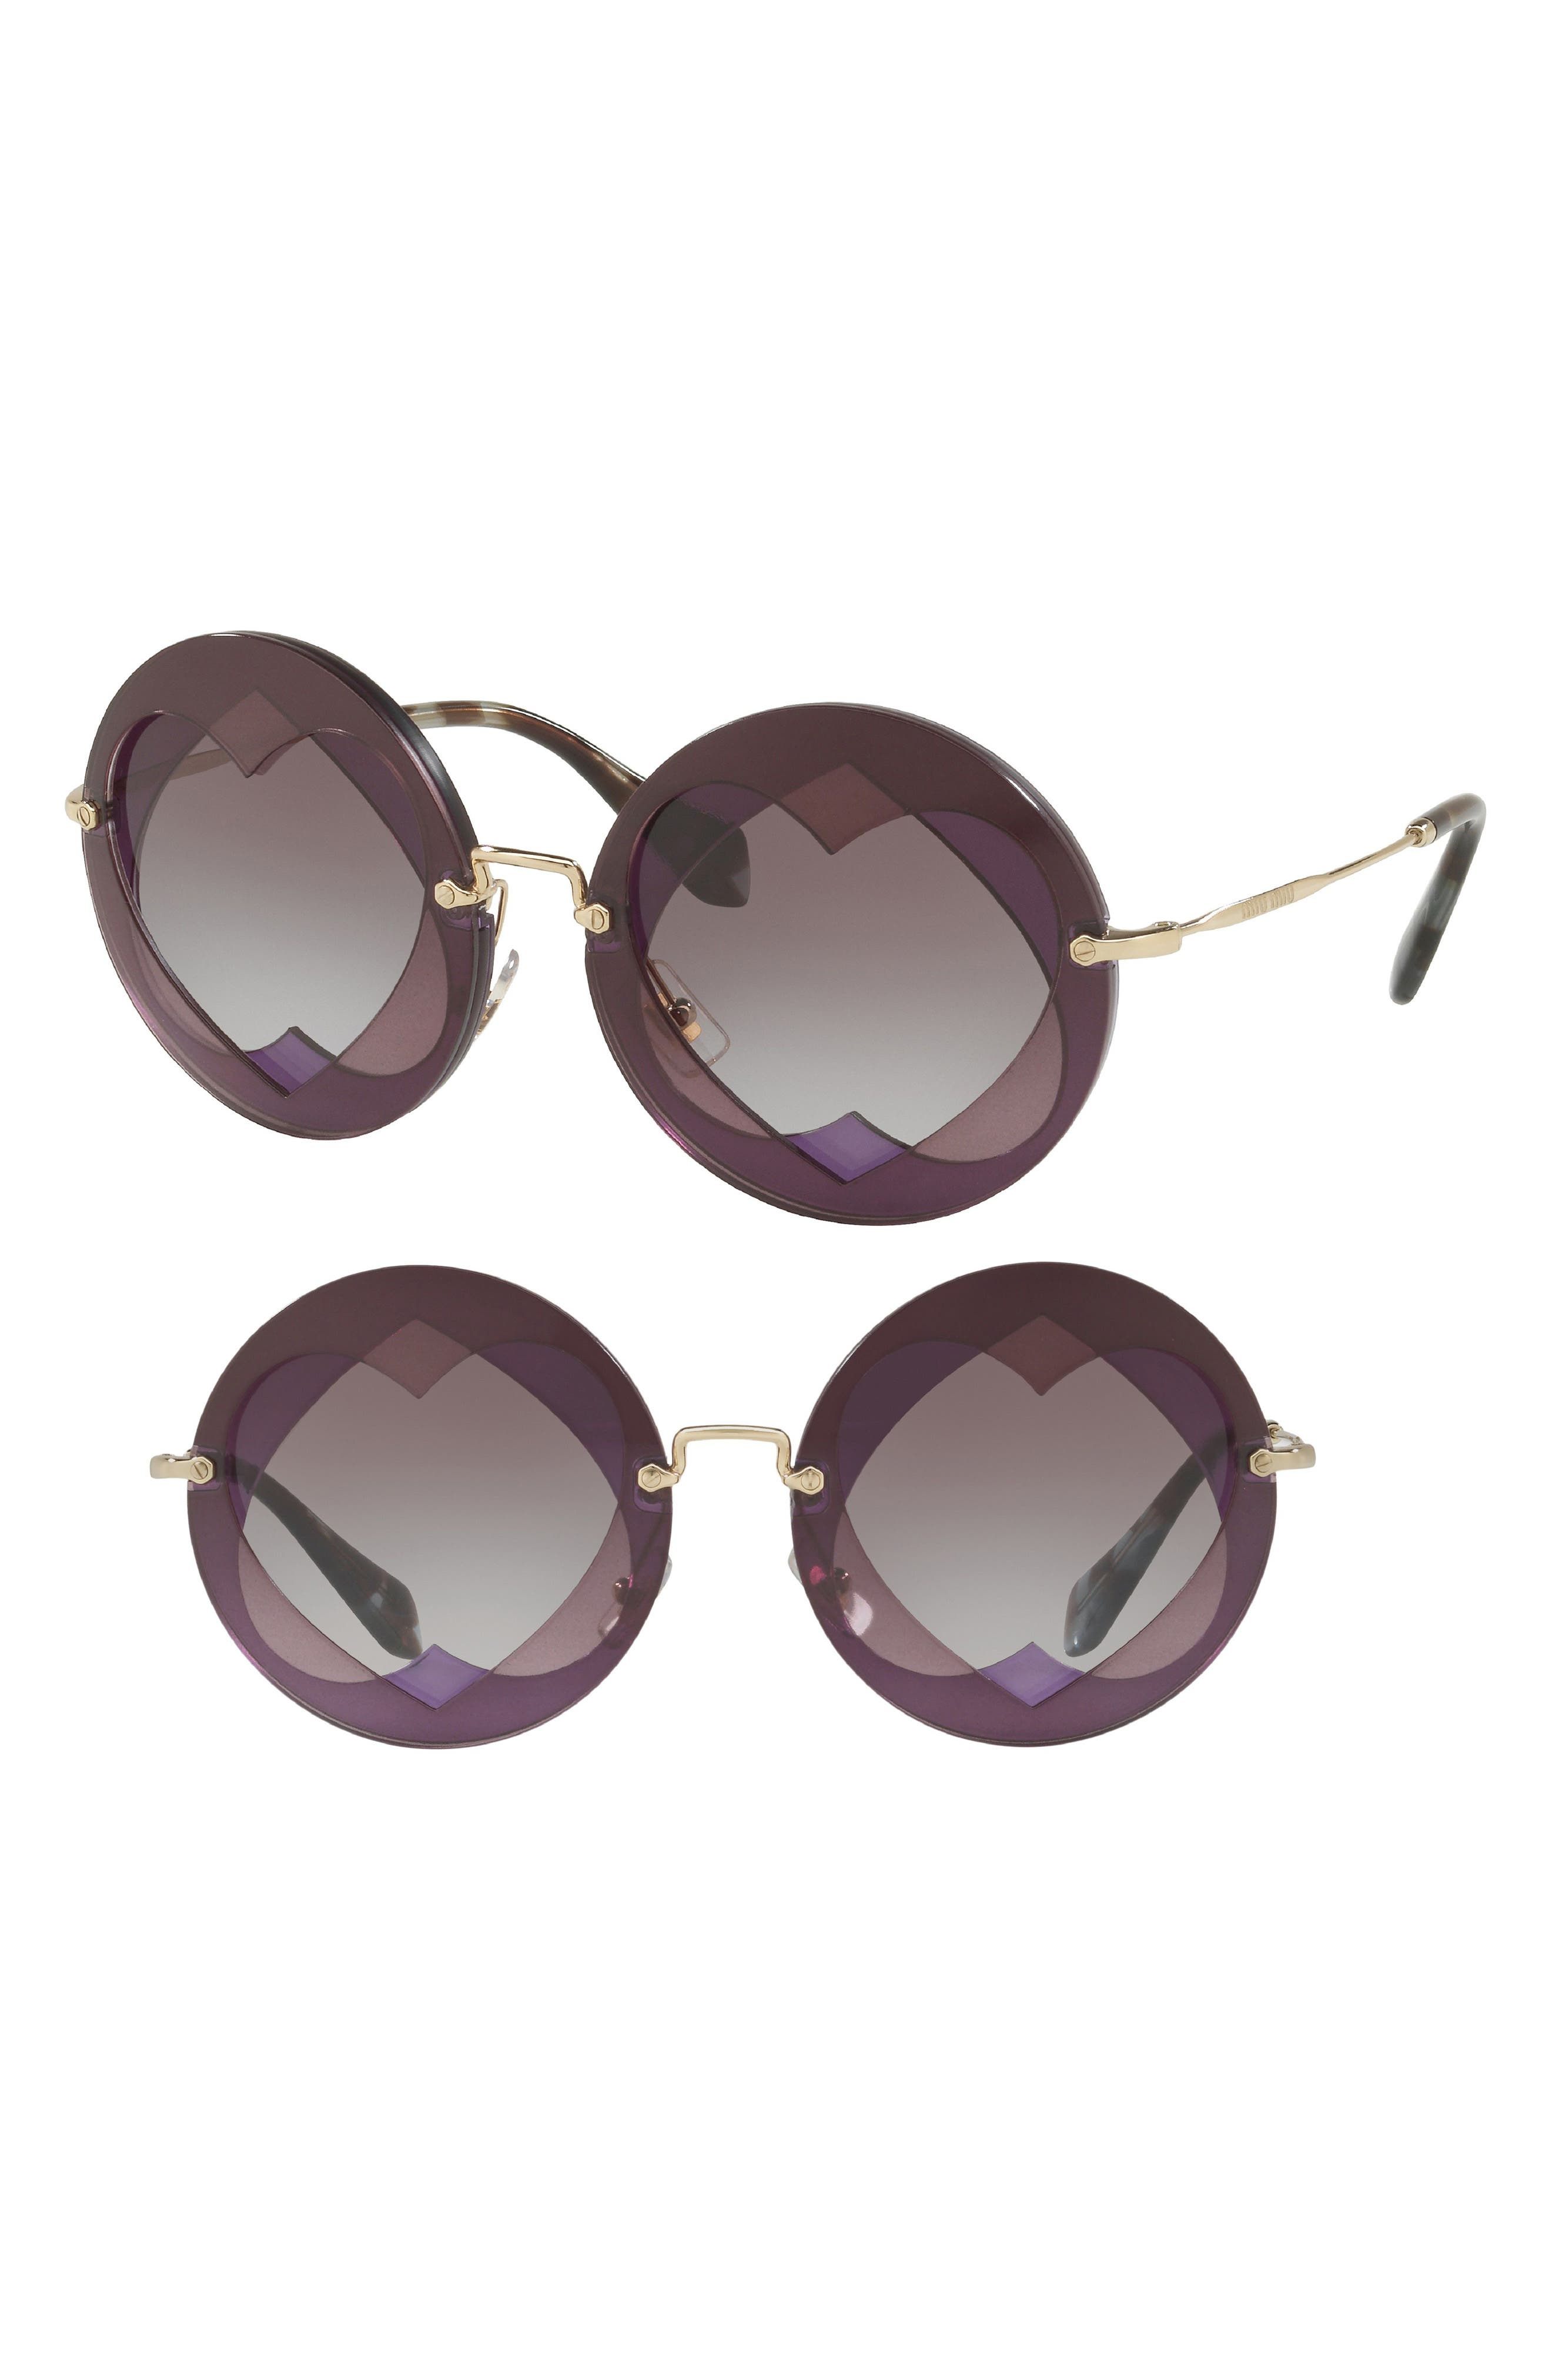 Miu Miu 62Mm Layered Heart Round Sunglasses - Violet Gradient